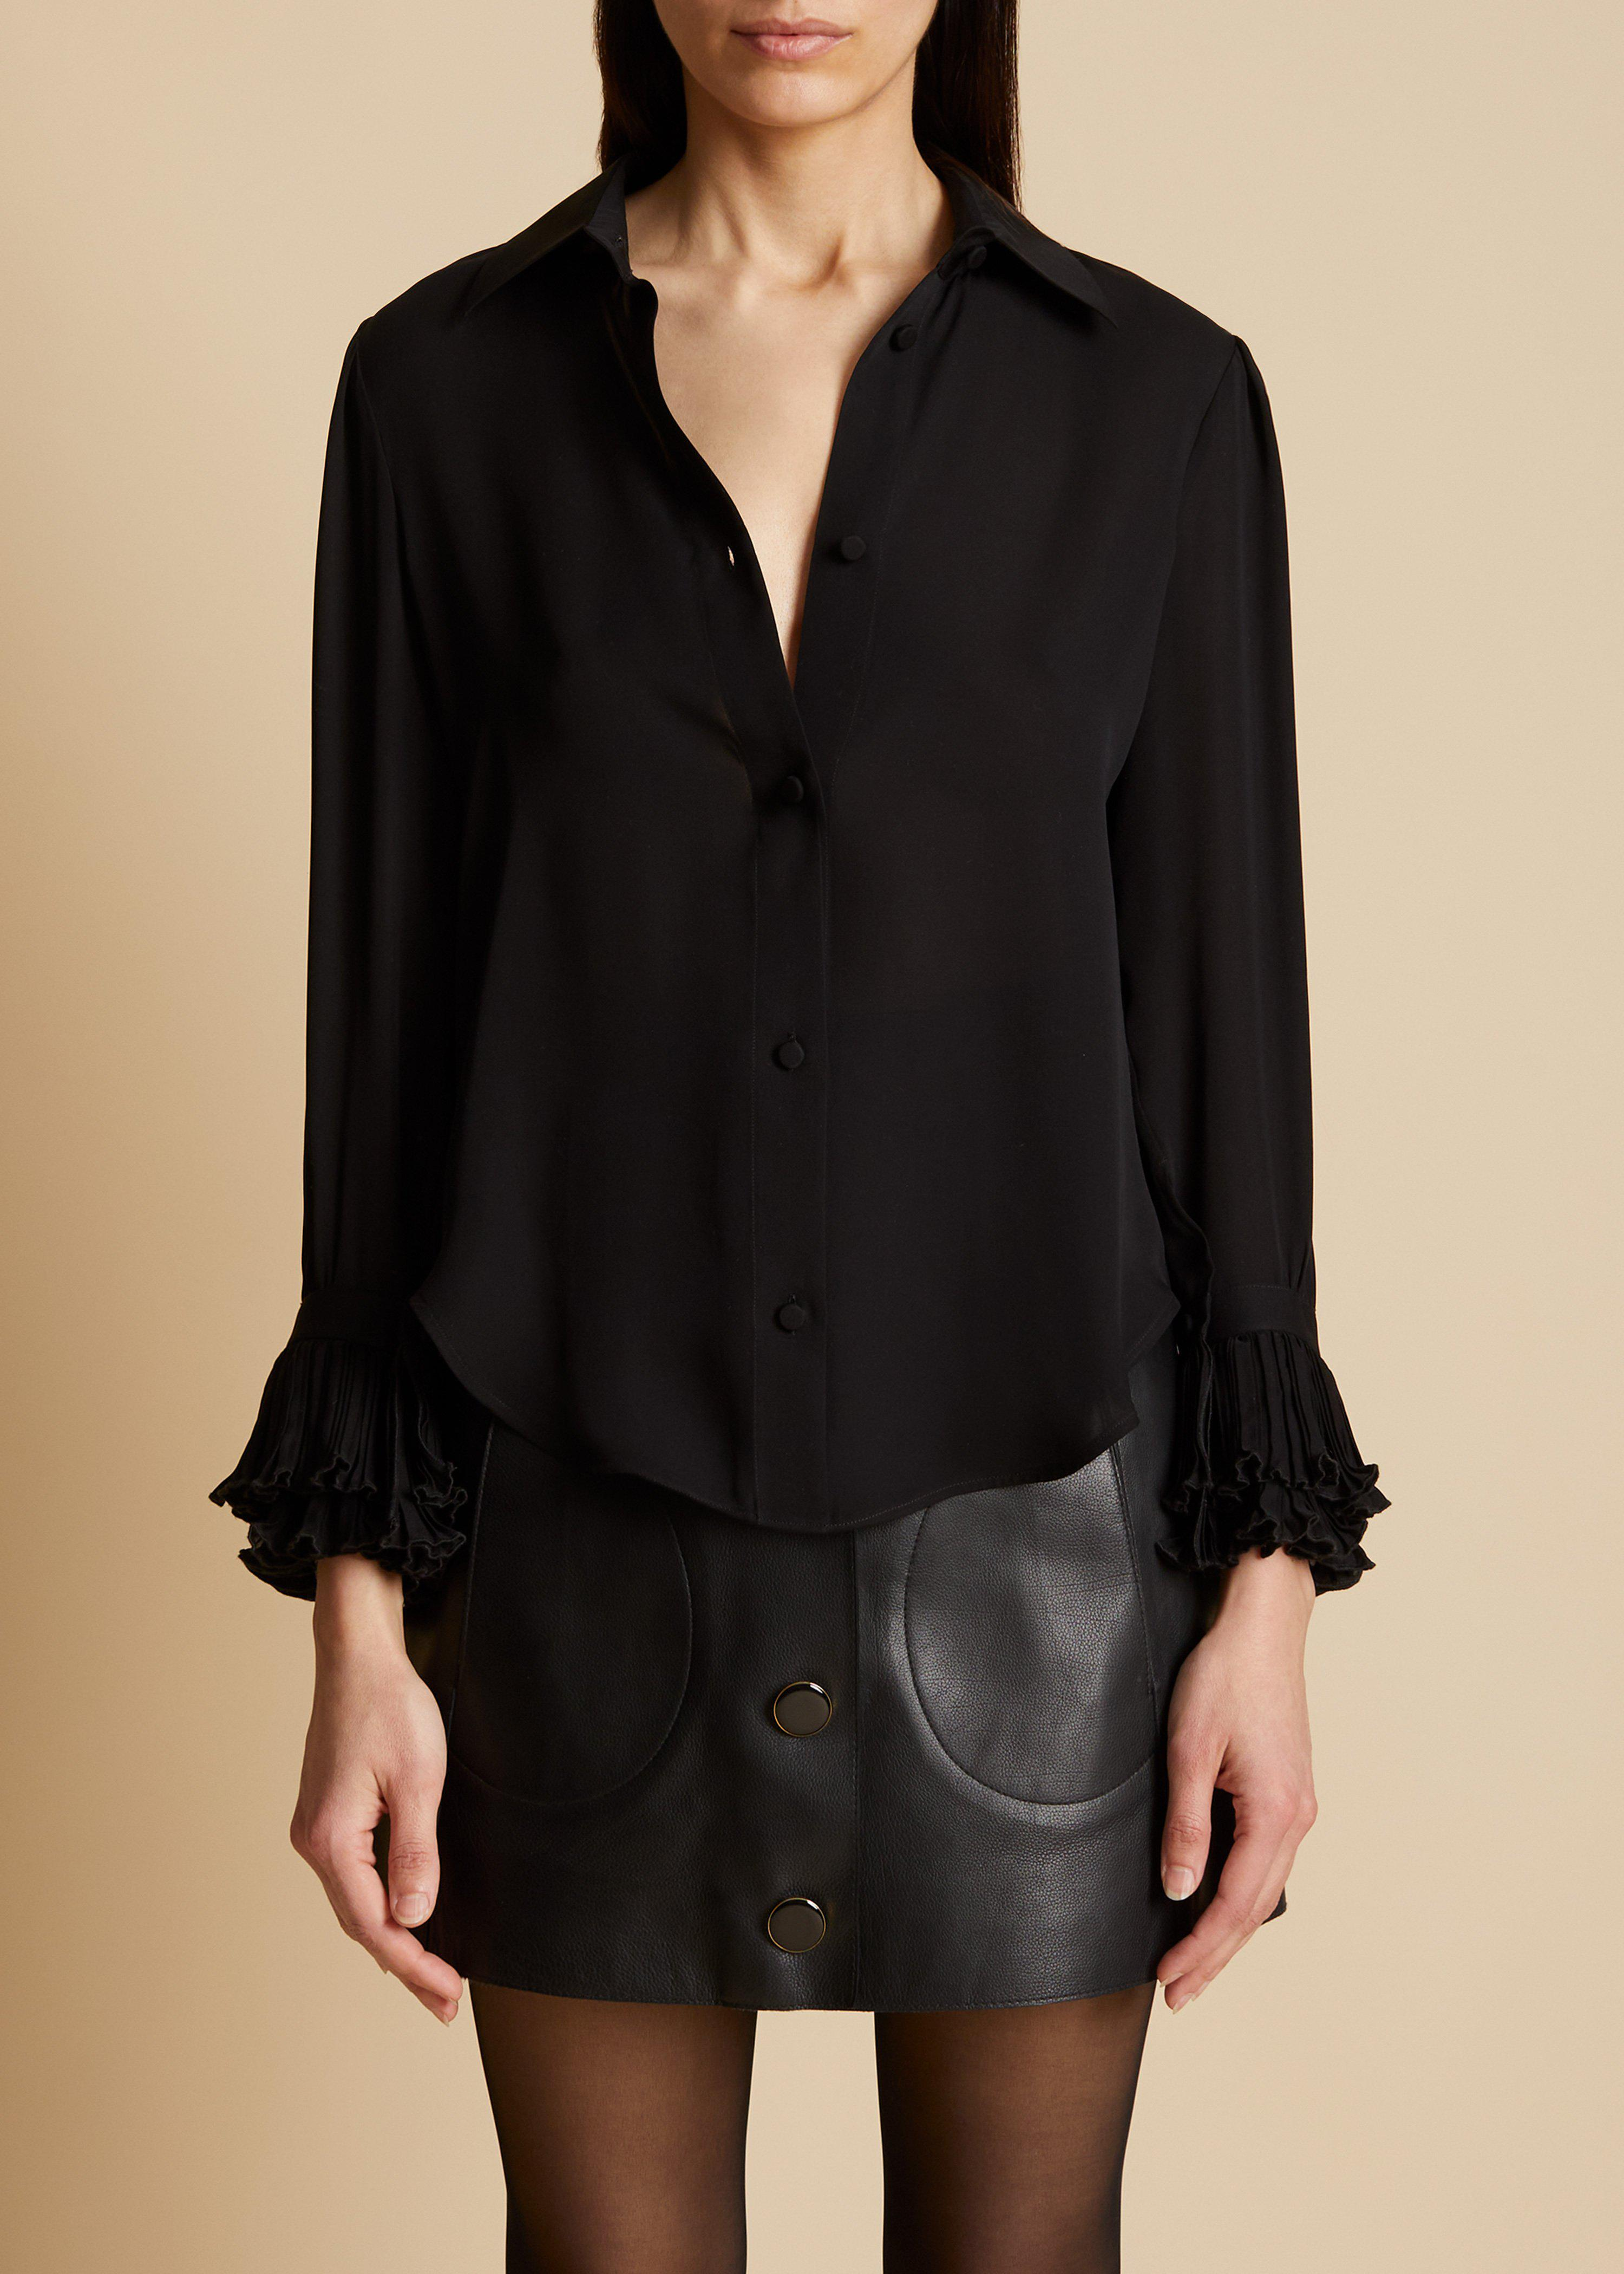 The Mary Top in Black 0